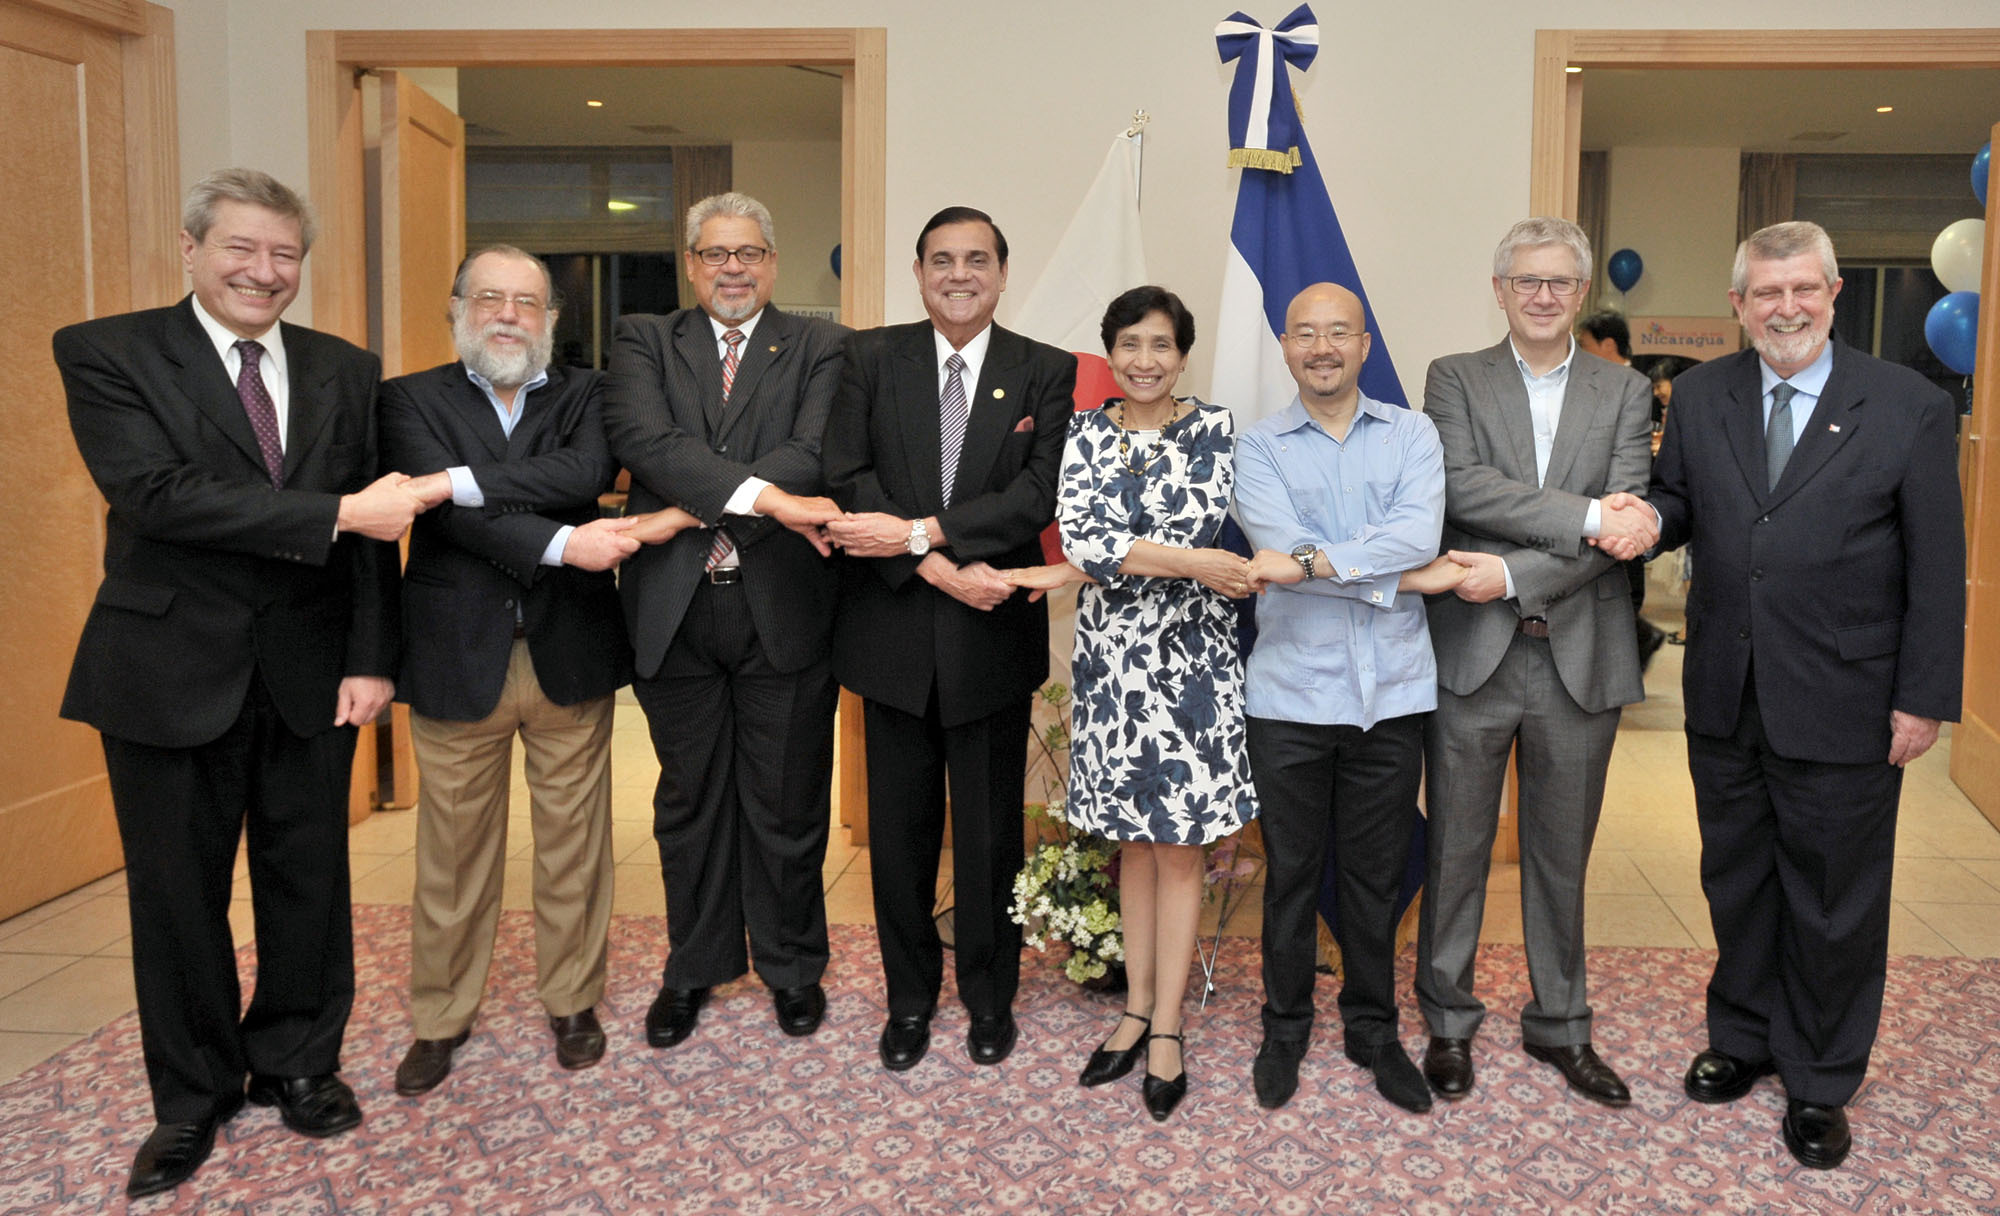 Nicaragua's Ambassador Saul Arana (fourth from left) joins (from left) ambassadors Eduardo Bouzout Vignoli (Uruguay), Leonardo Carrion Eguiguren (Ecuador), Hector Paulino Dominguez Rodriguez (Dominican Republic), Martha Zelayandia (El Salvador), Seiko Luis Ishikawa Kobayashi (Venezuela), Gabriel Duque (Colombia) and Marcos Fermin Rodriguez Costa (Cuba) during a reception celebrating the 195th National Day of the Republic of Nicaragua at the ambassador's residence in Tokyo on Sept. 17. | YOSHIAKI MIURA